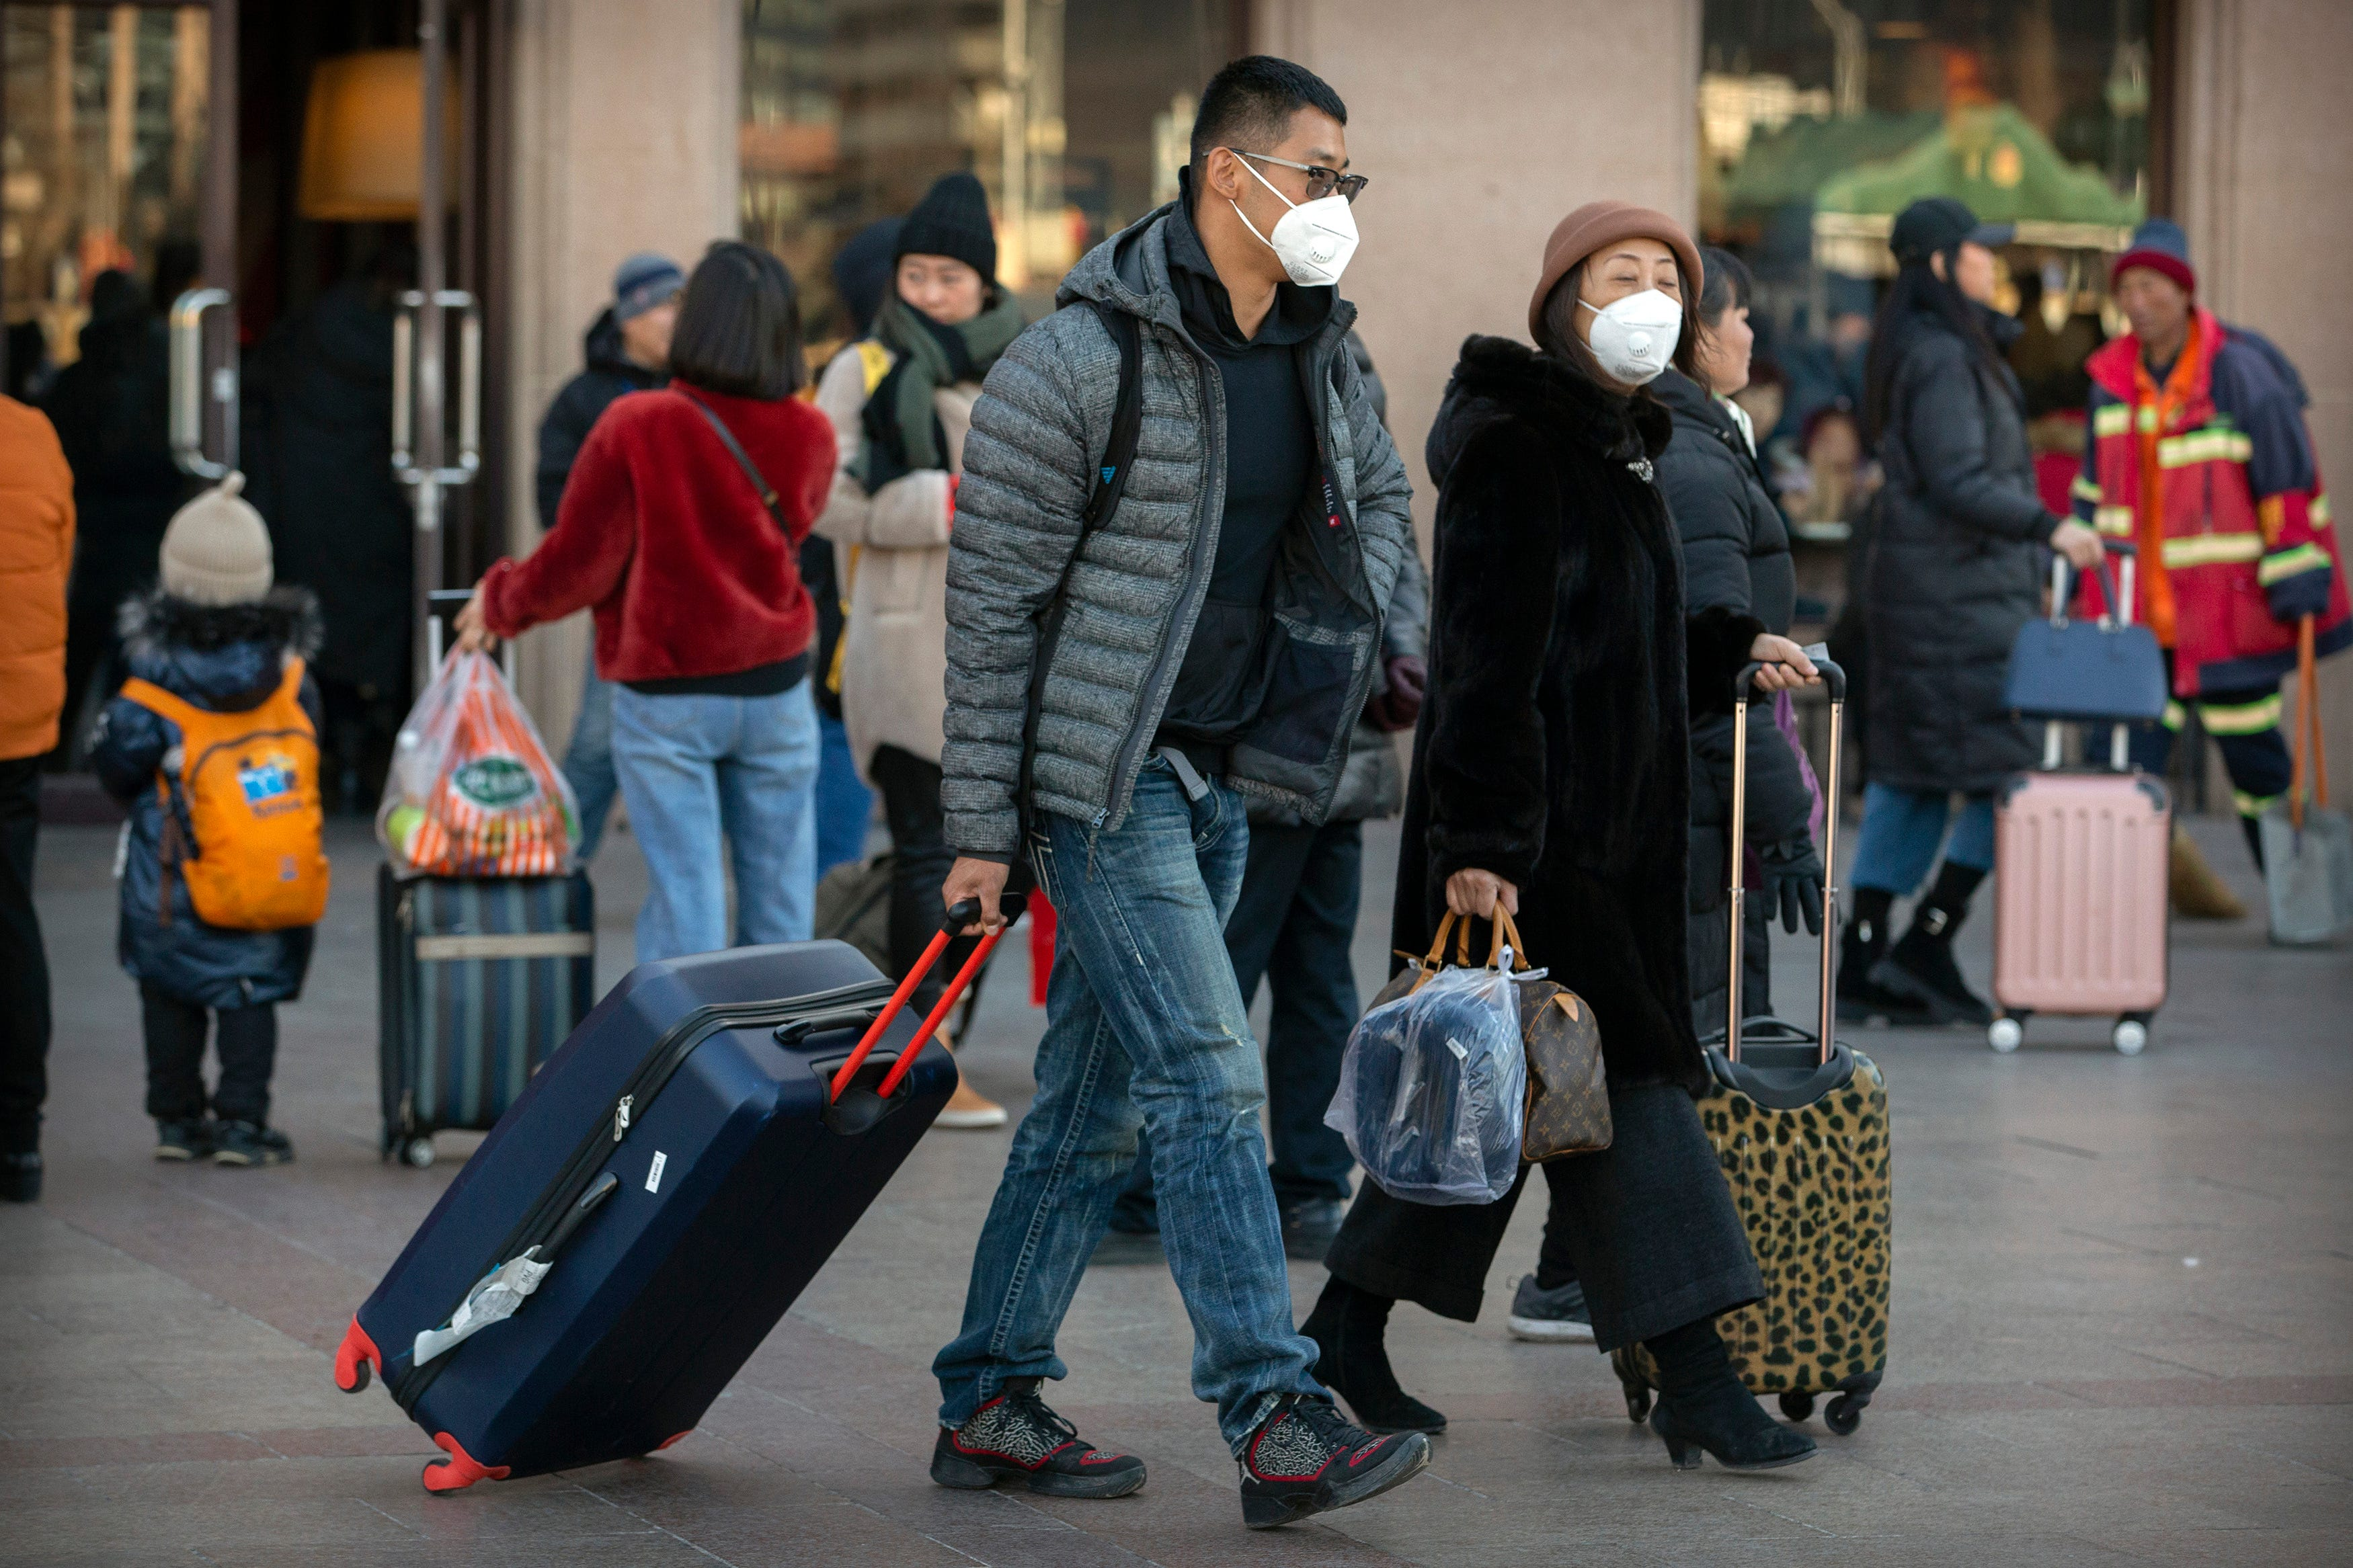 CDC expanding coronavirus screening to two more airports: Atlanta and Chicago O'Hare